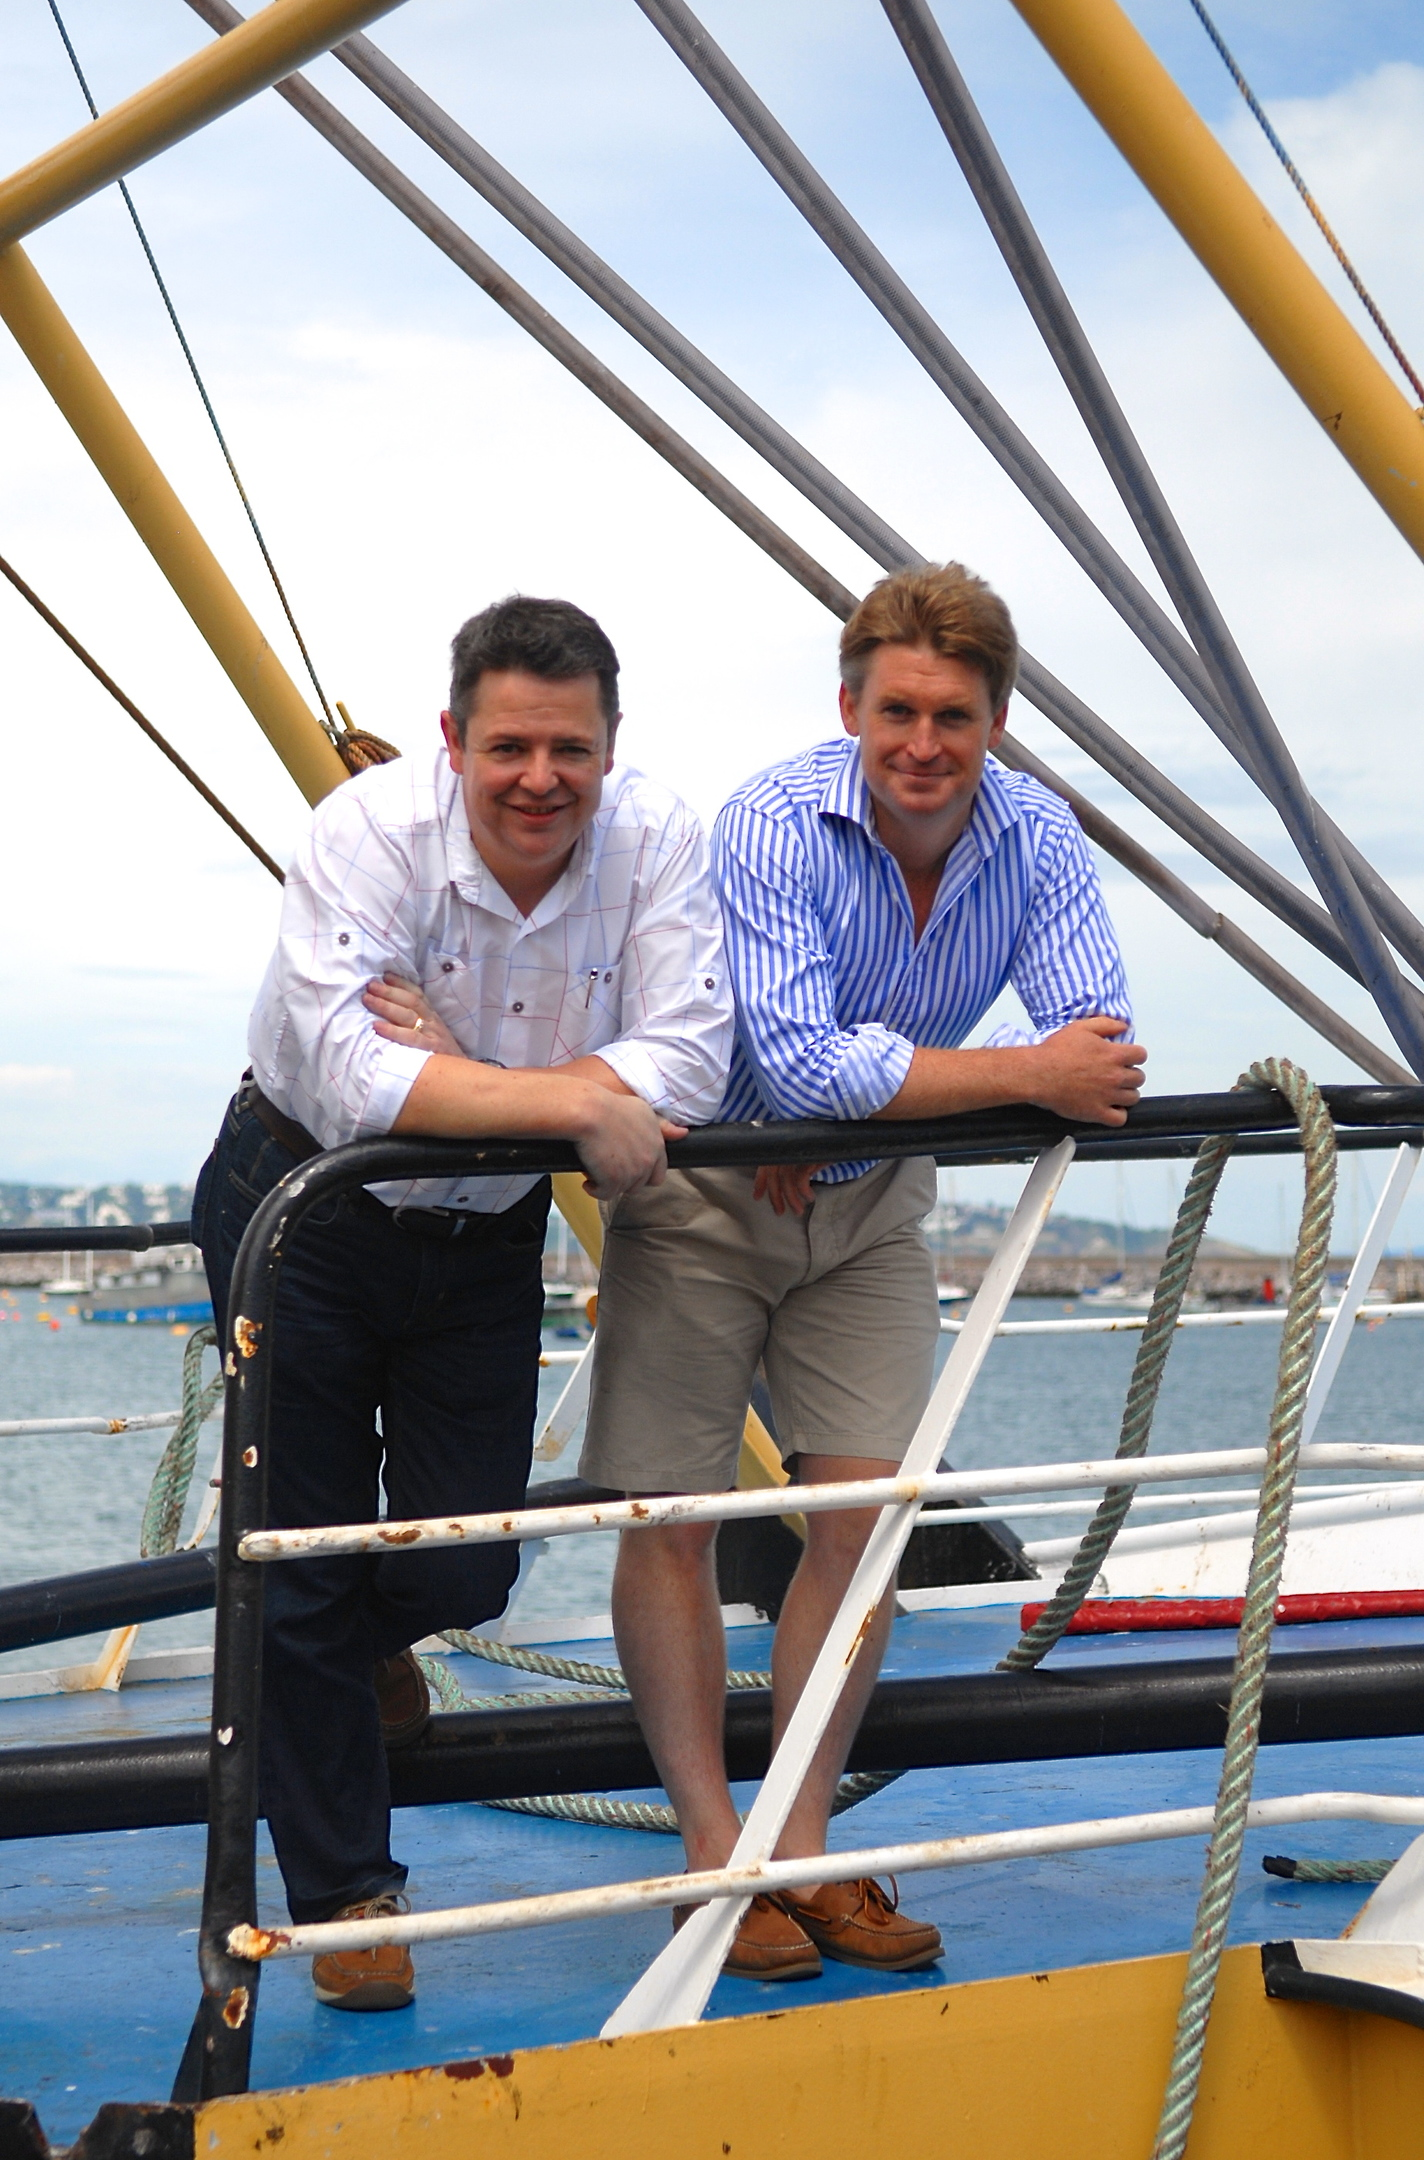 Macduff chairman Euan Beaton, left with Mat Carter, managing director at the Greendale Group